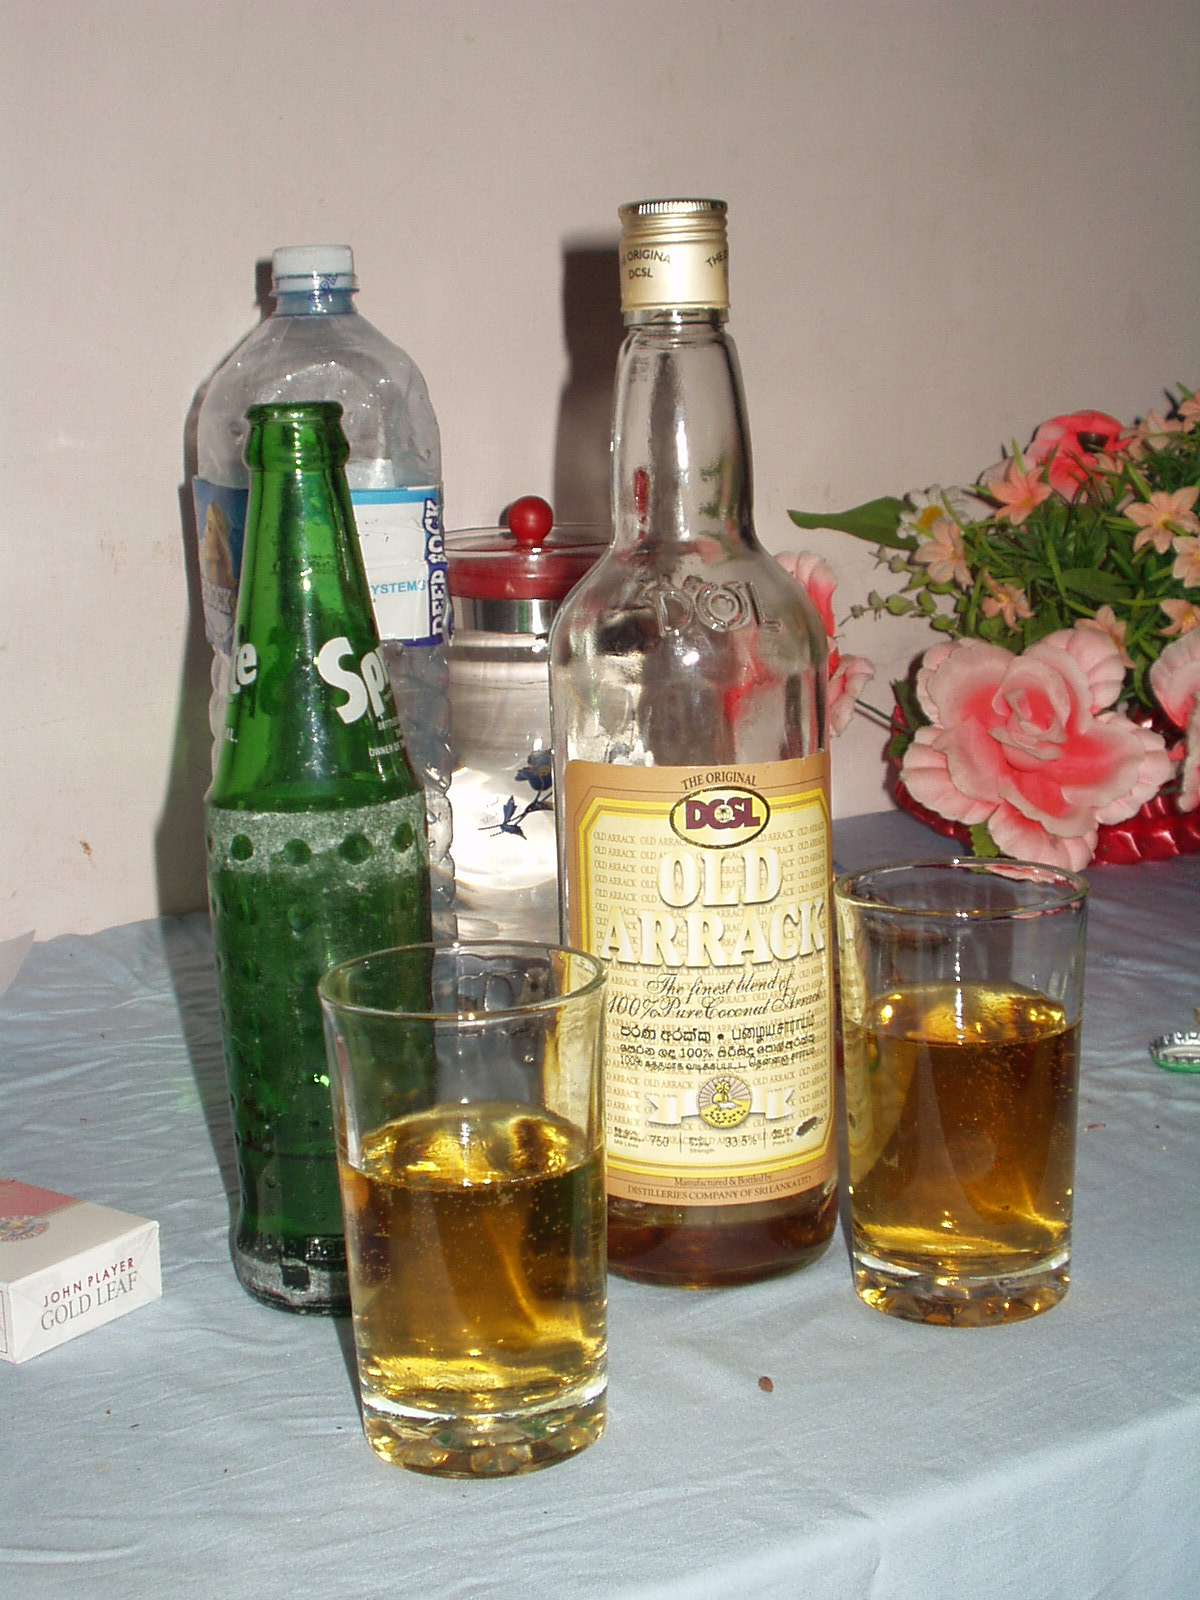 the_traditional_drink_of_sri_lanka-_old_arrack-_made_from_coconuts Job Application Form In Sri Lanka on jobs in congo, jobs in paraguay, jobs in yemen, jobs in french guiana, jobs in lithuania, jobs in mali, jobs in uruguay, jobs in the arctic, jobs in saint lucia, jobs in seychelles, jobs in sudan, jobs in turkmenistan, jobs in finland, jobs in cameroon, jobs in mauritius, jobs in tunisia, jobs pakistan, jobs in belgium, jobs in greenland, jobs in colombia,